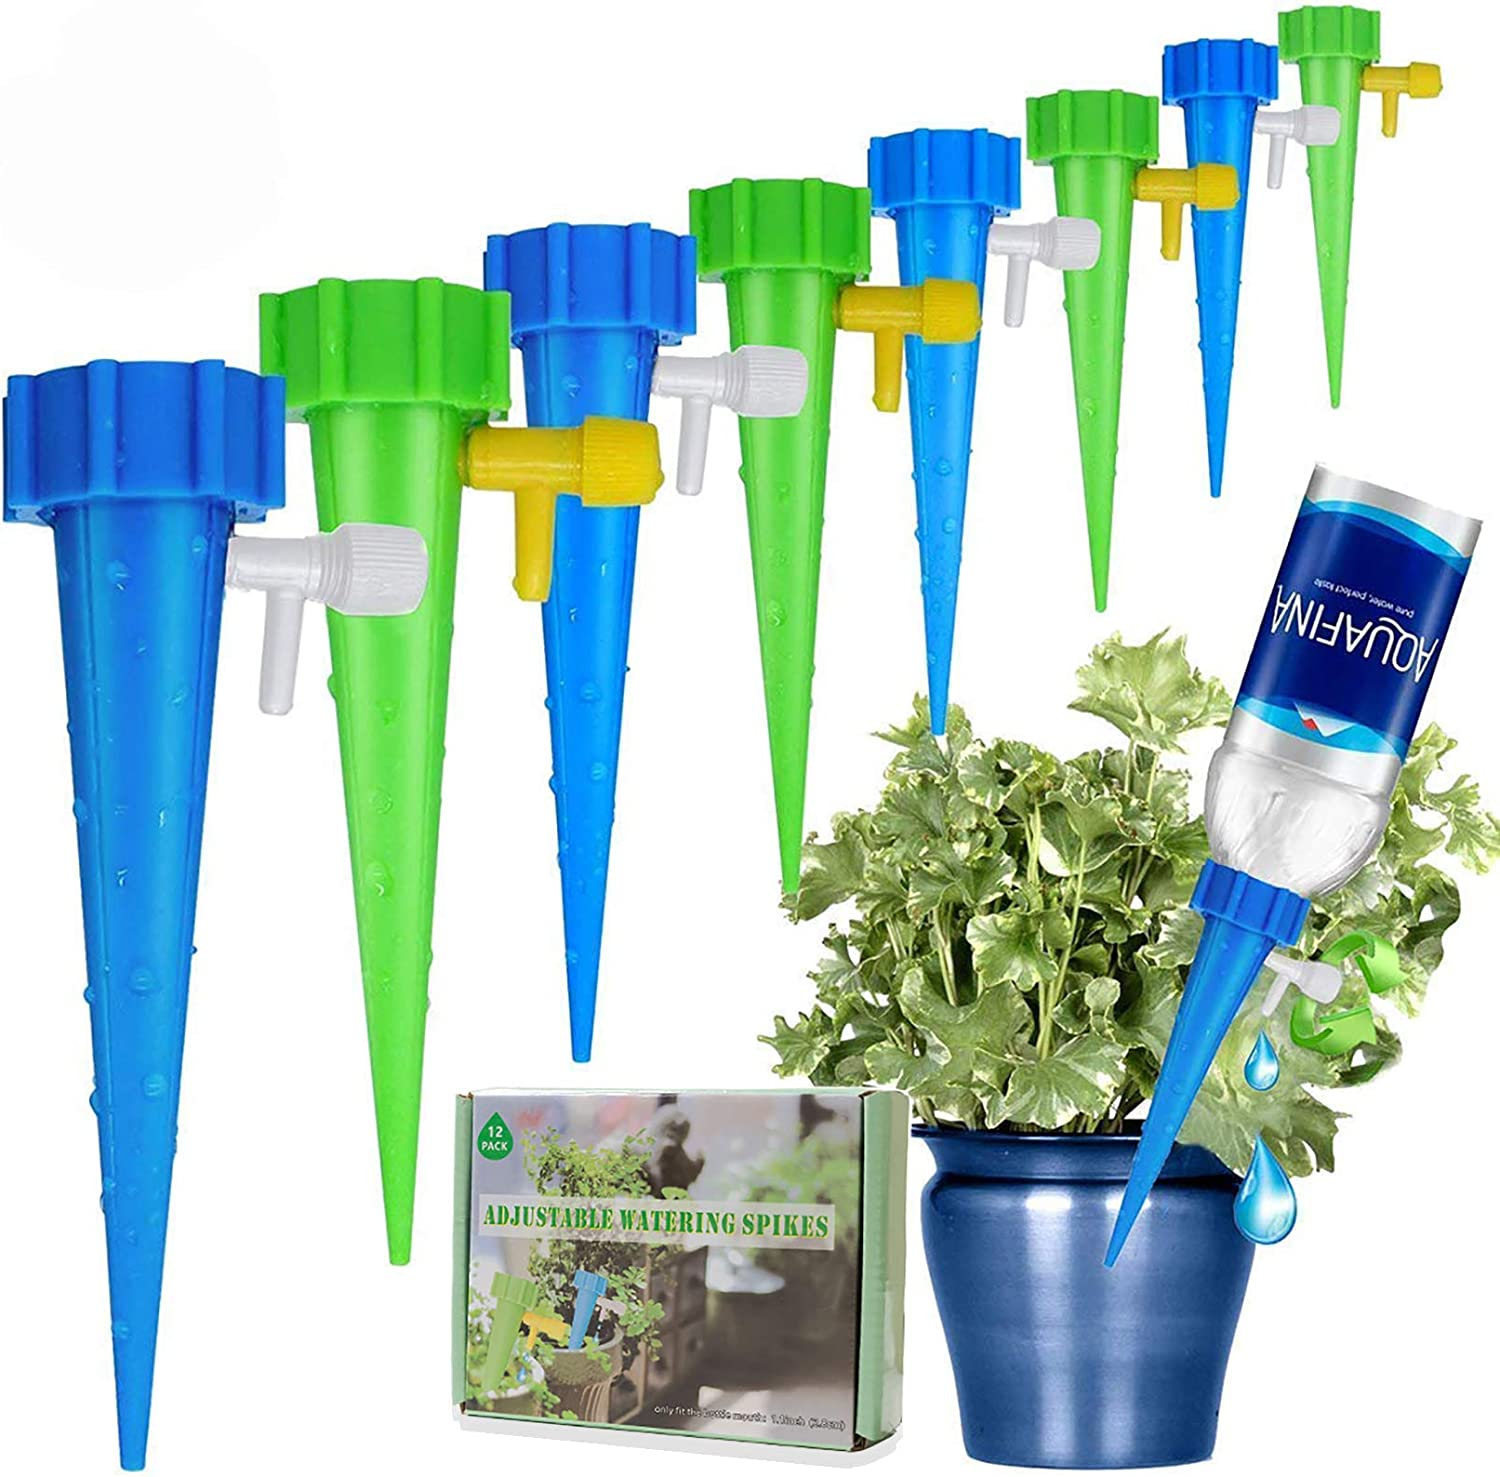 [New Upgrade] Self Watering Spike Slow Release Vacation Plants Watering  System Automatic Watering Devices for Wine Bottle Small Plastic Water  Bottle ...